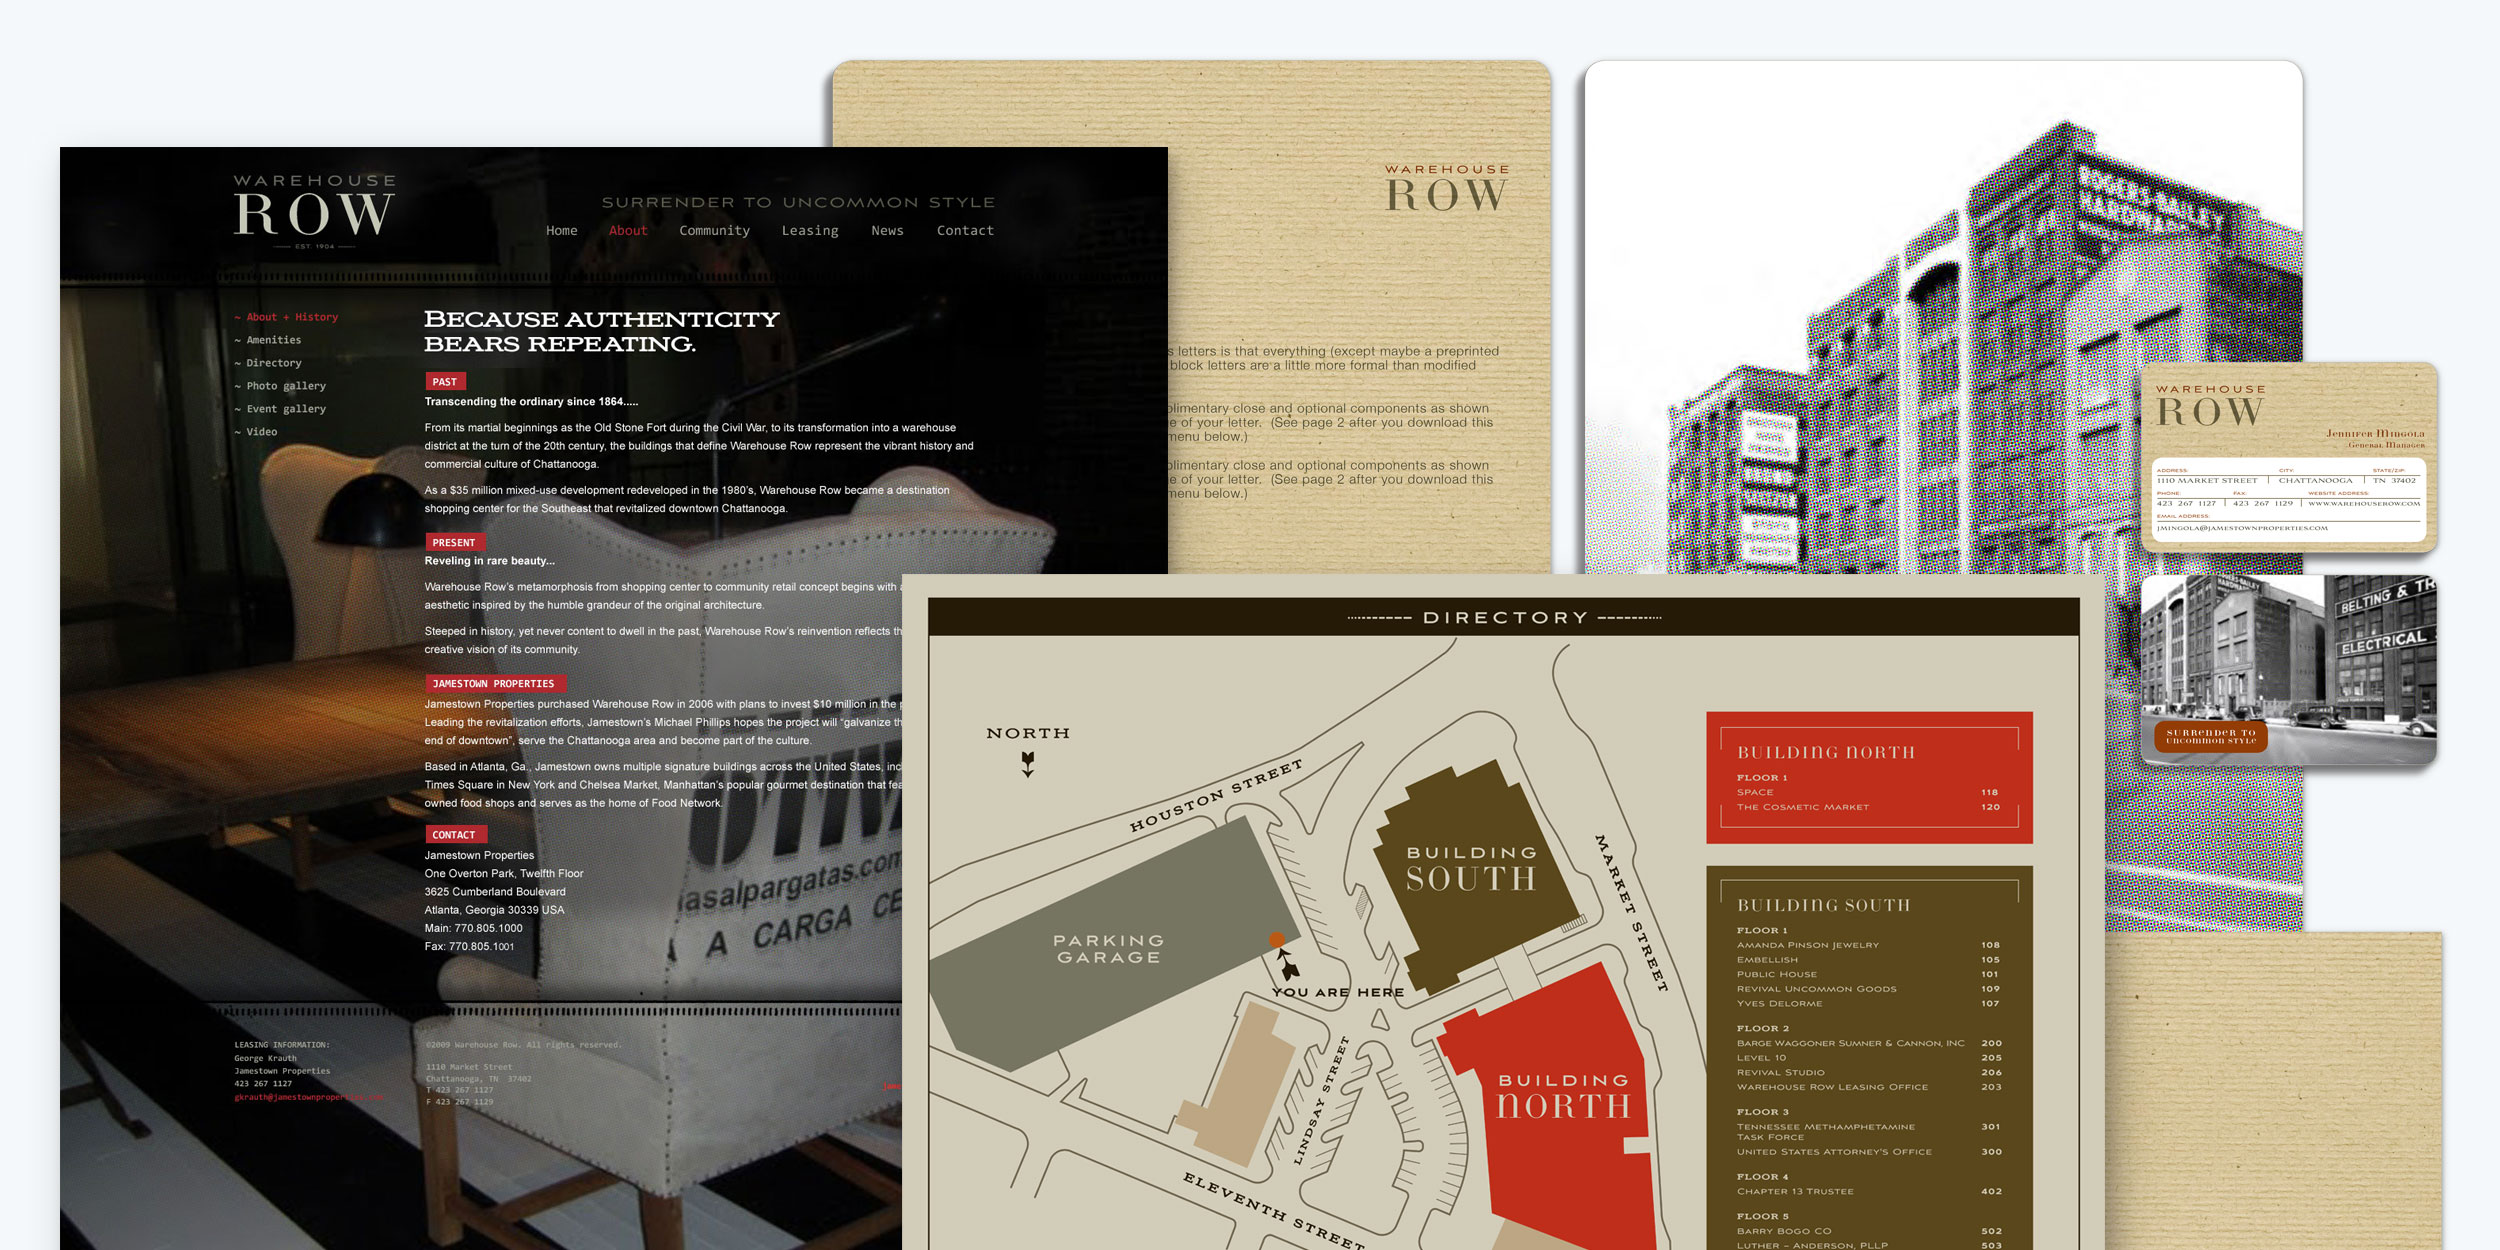 Image collage of Warehouse Row branding materials